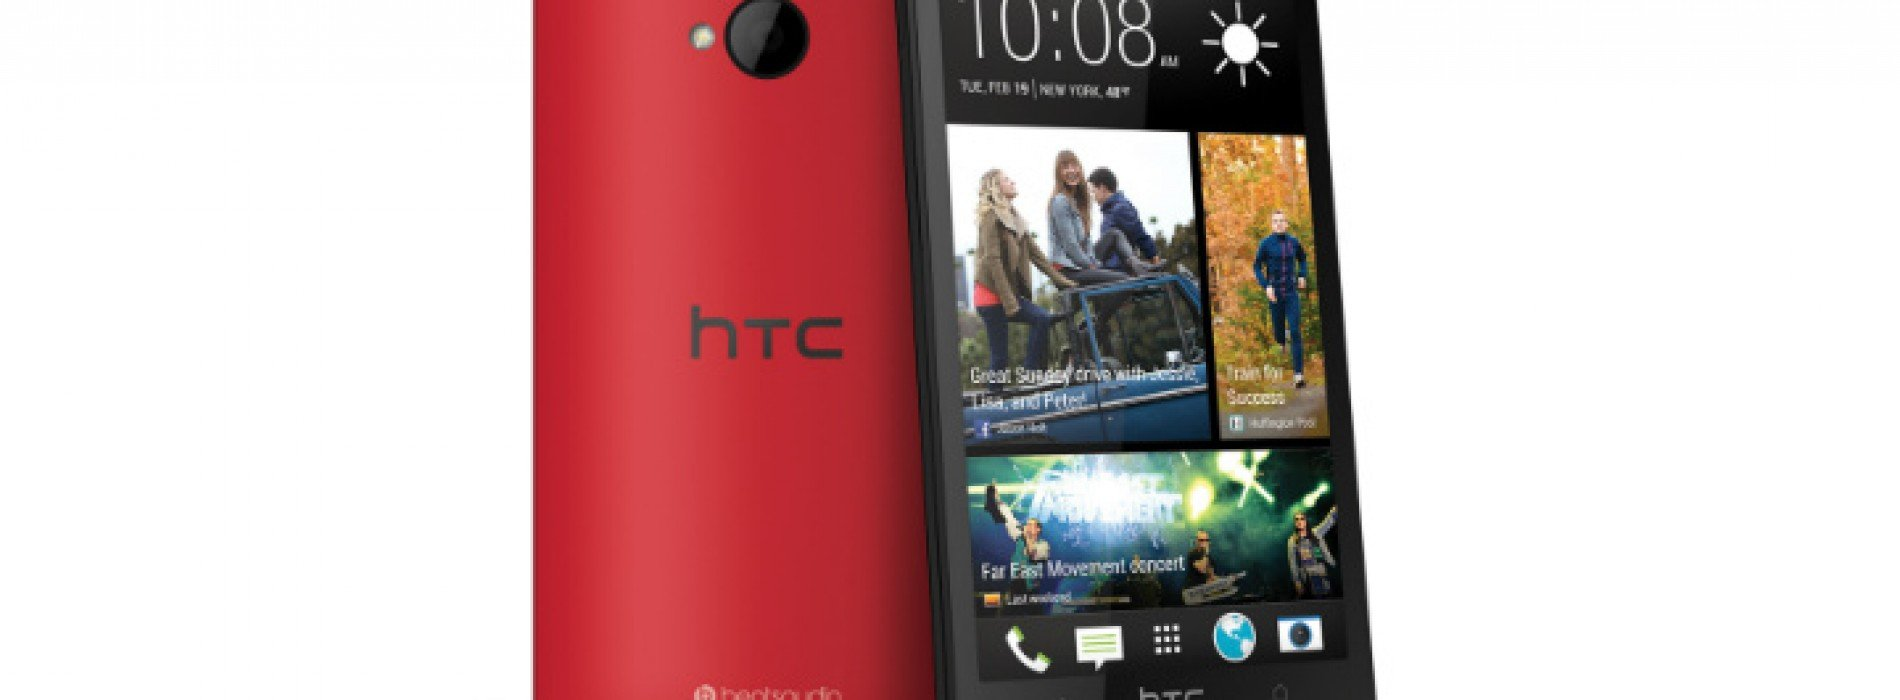 HTC One refresh rumored with octa-core CPU, 3GB RAM